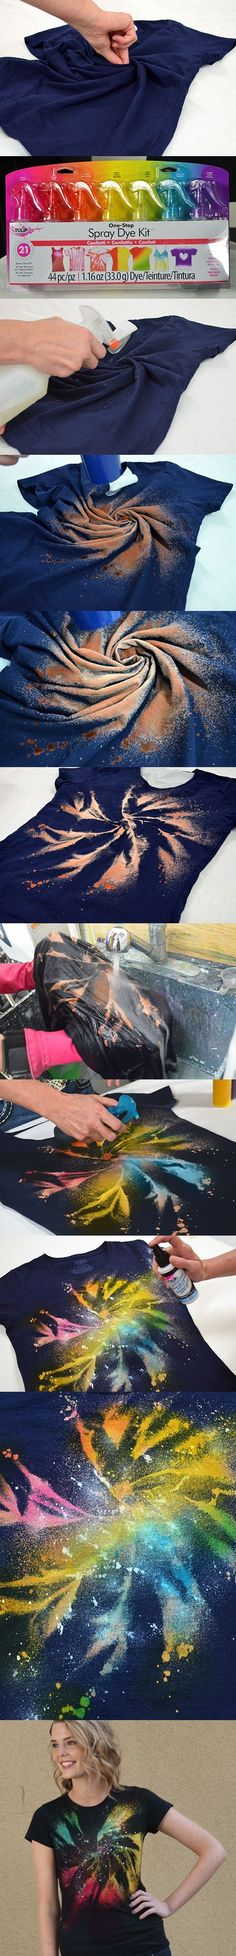 Twist shirt, spray bleach, then add colors...or just leave bleached. Fun activity for the kids while at the cabin! by Superduper